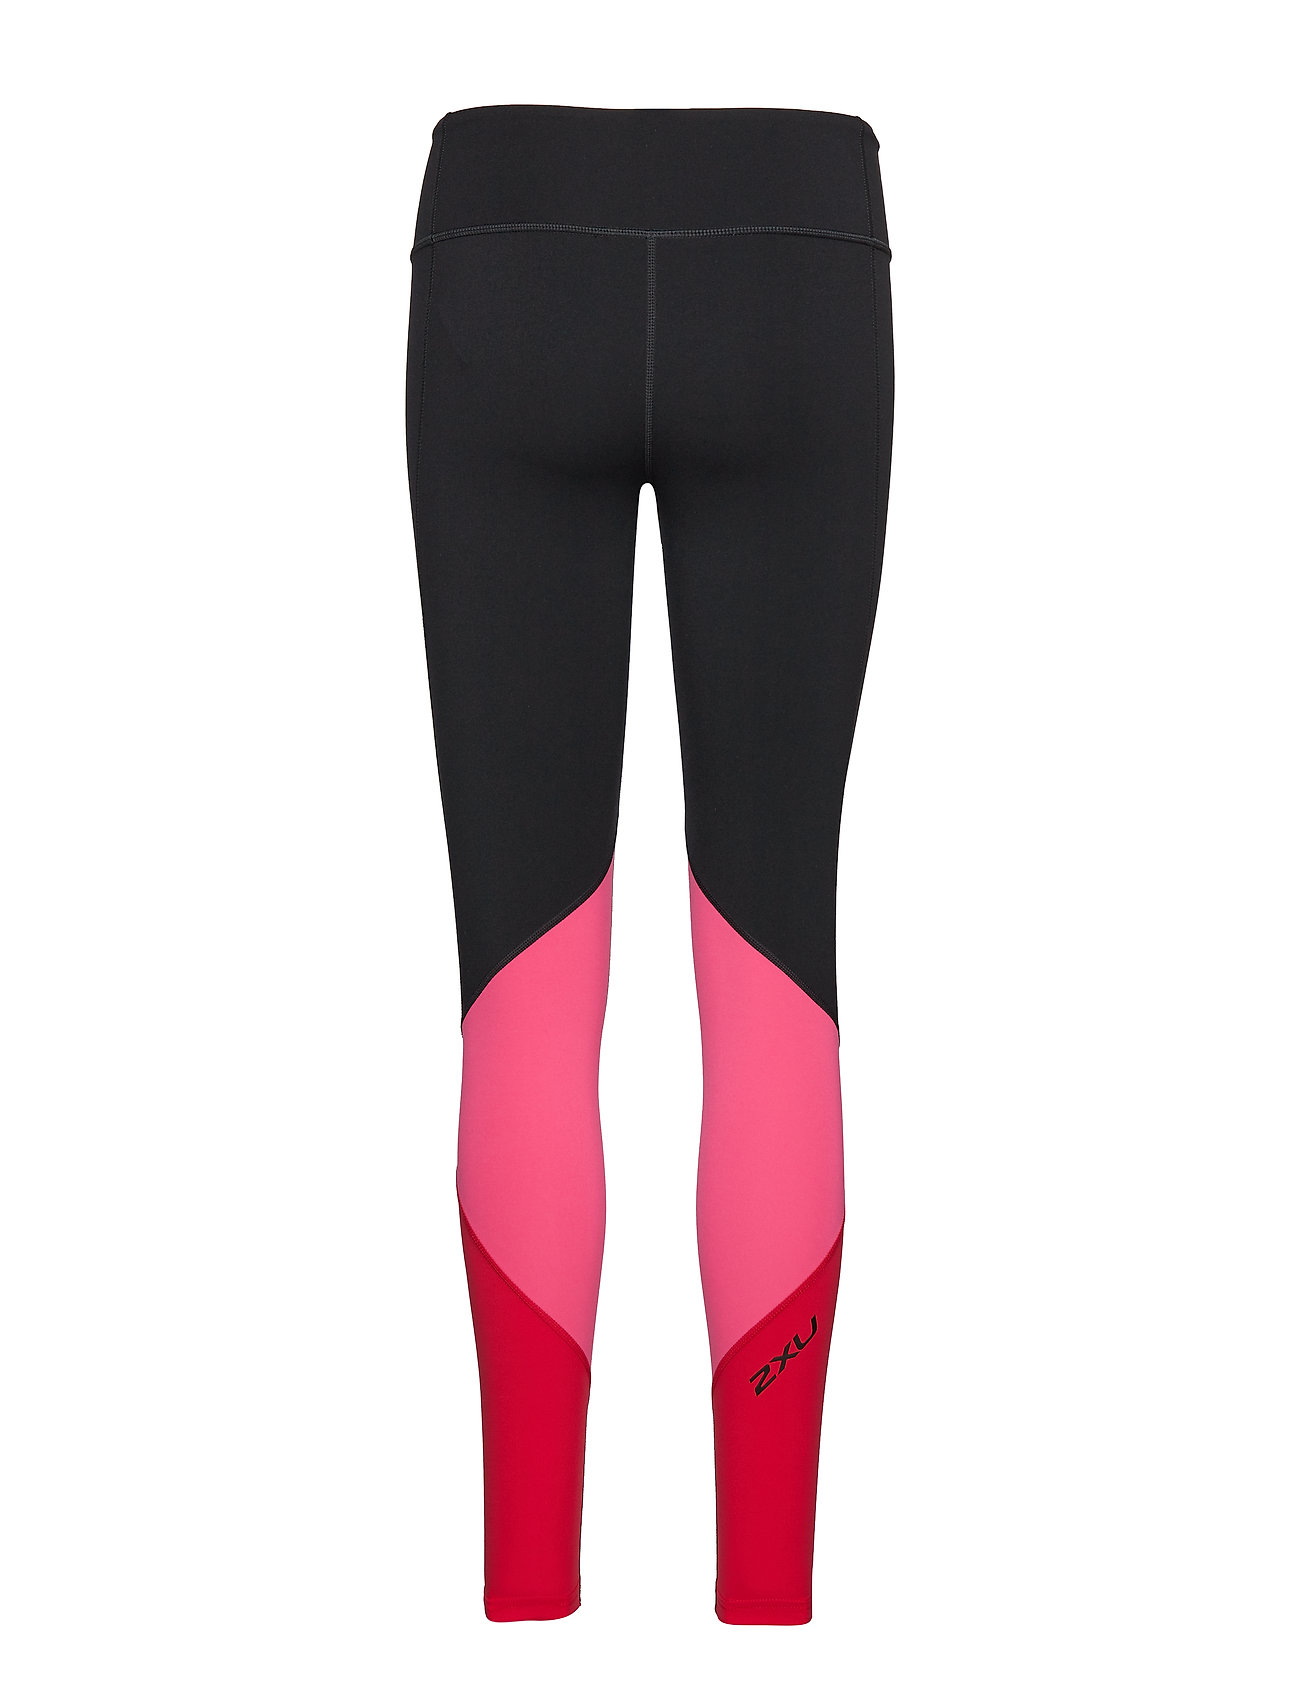 Stride Lipstick wblack Fitness Comp fuchsia Tights Red2xu pqzjMVGUSL